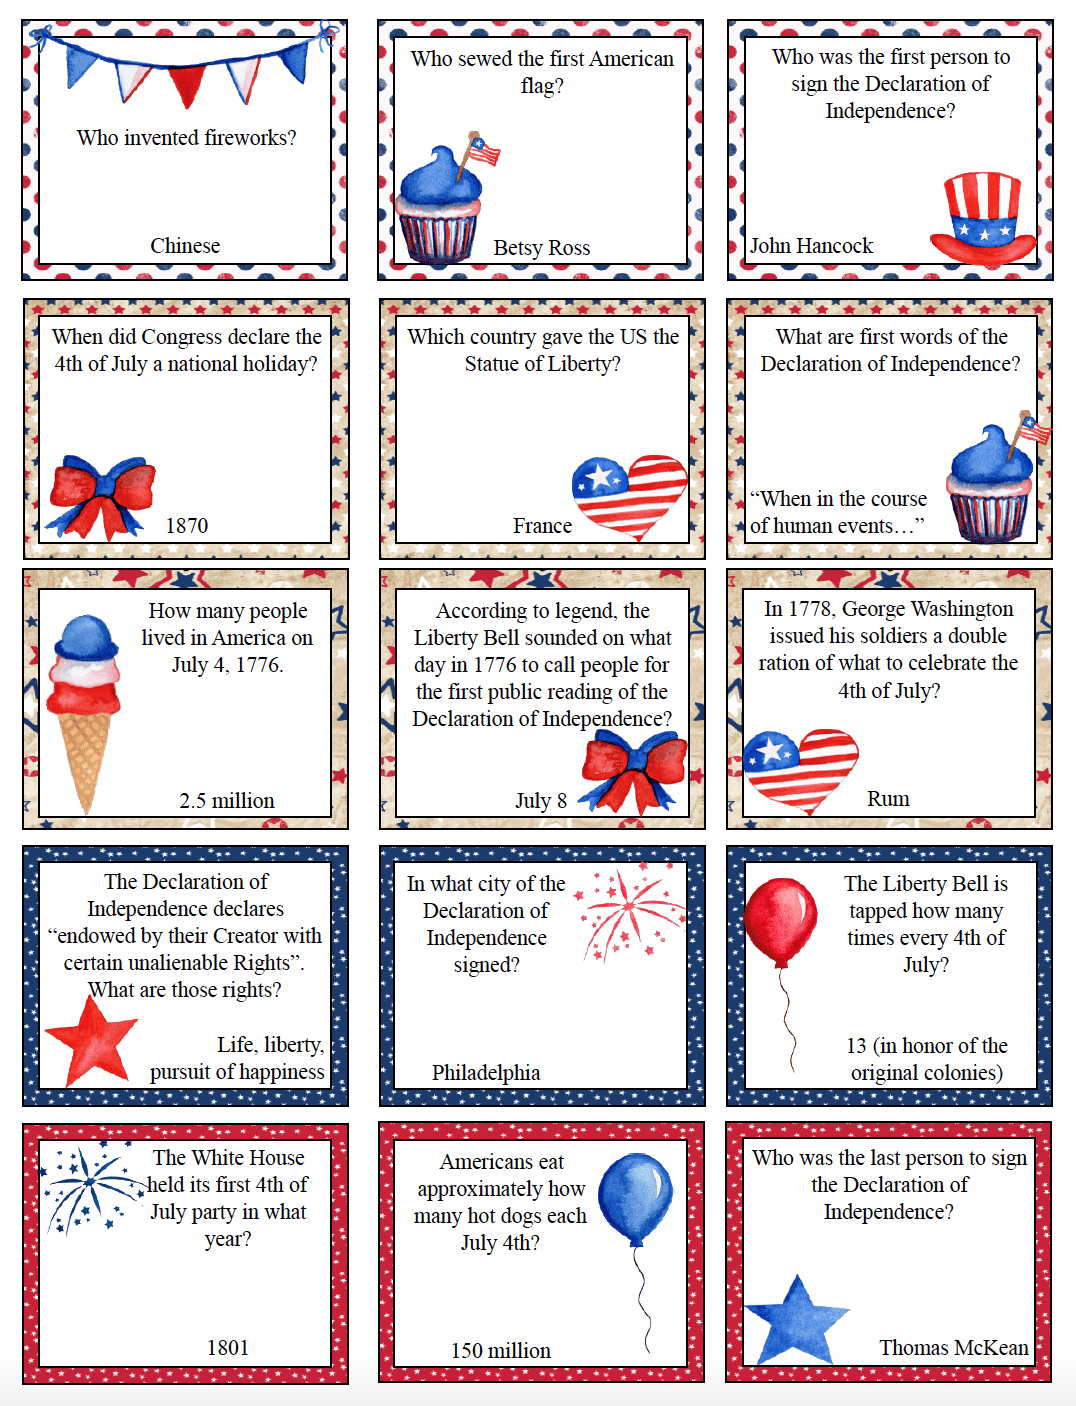 picture relating to 4th of July Trivia Printable referred to as Absolutely free Printable 4th of July Trivia